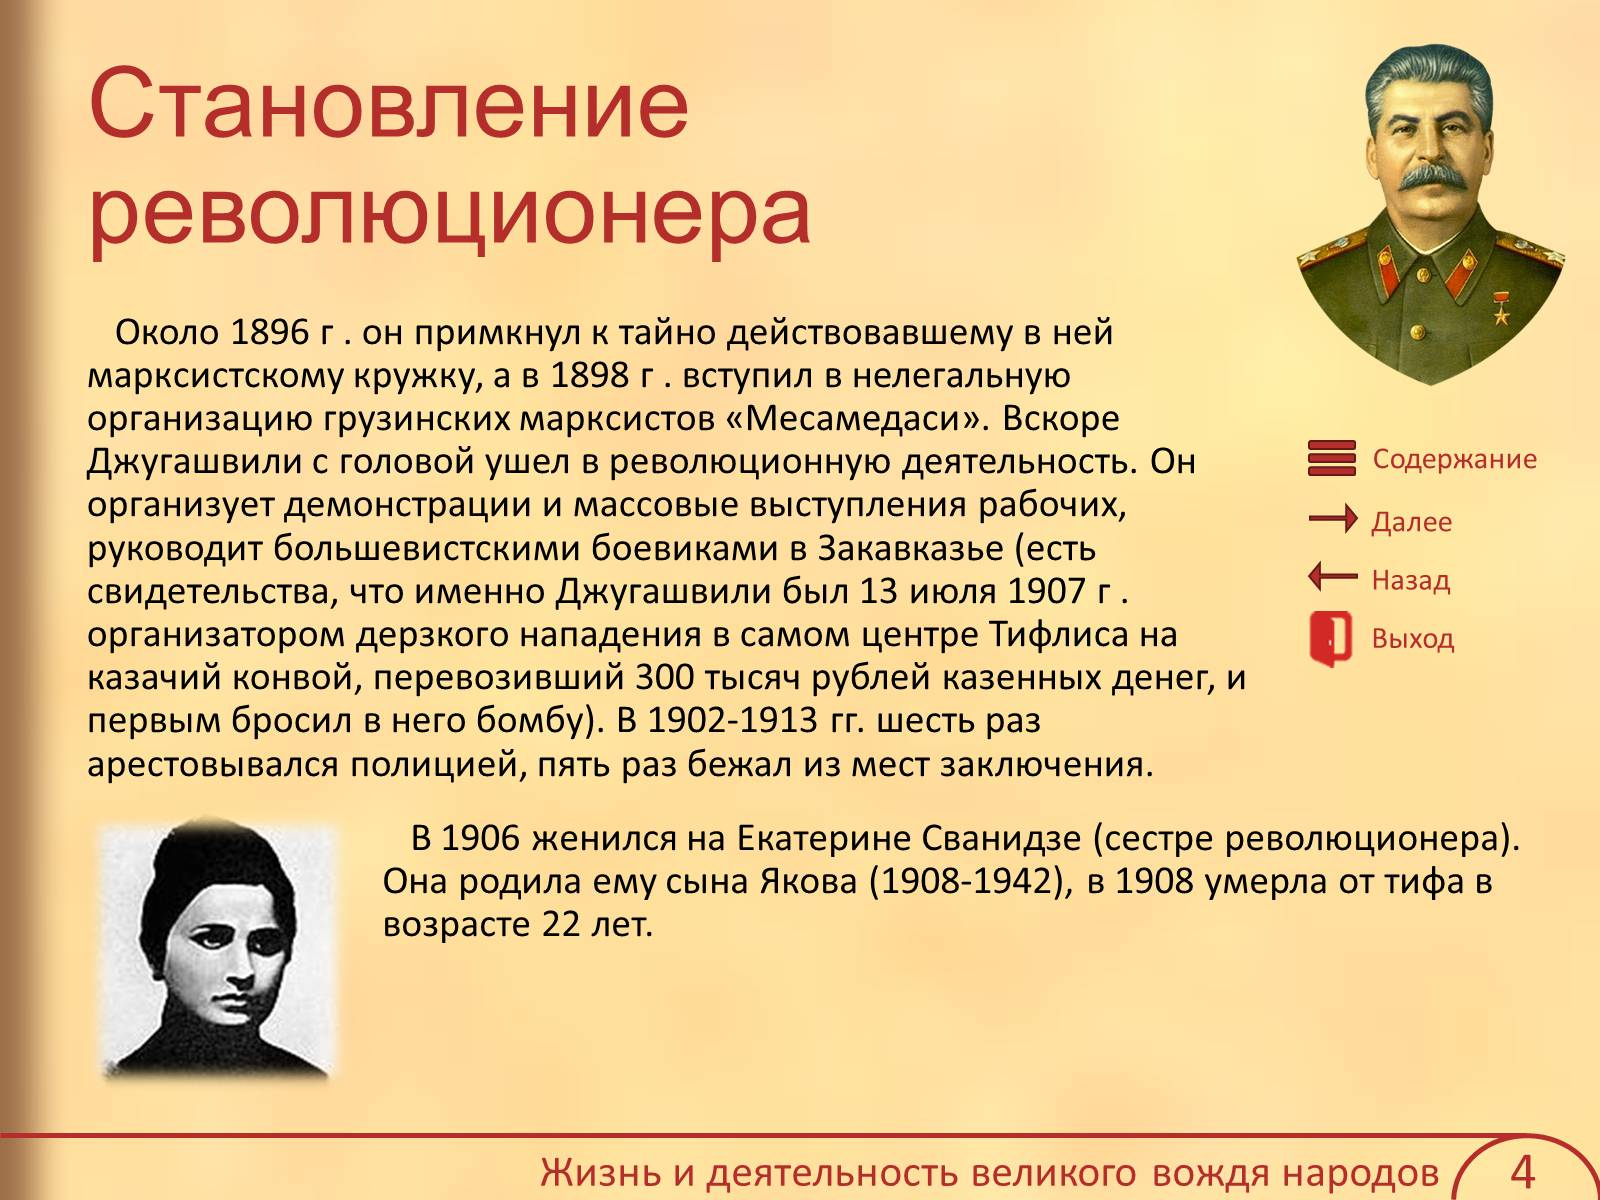 a biography of iosif vissarionovich dzhugashvili the stalin Joseph vissarionovich dzhugashvili (russian: иосиф виссарионович джугашвили, trans iosif vissarionovich dzhugashvili, 18 december 1878 - 5 march 1953), more commonly known by his pseudonym joseph stalin (russian: иосиф сталин, trans iosif stalin), was a russian politician who served as the 4th.